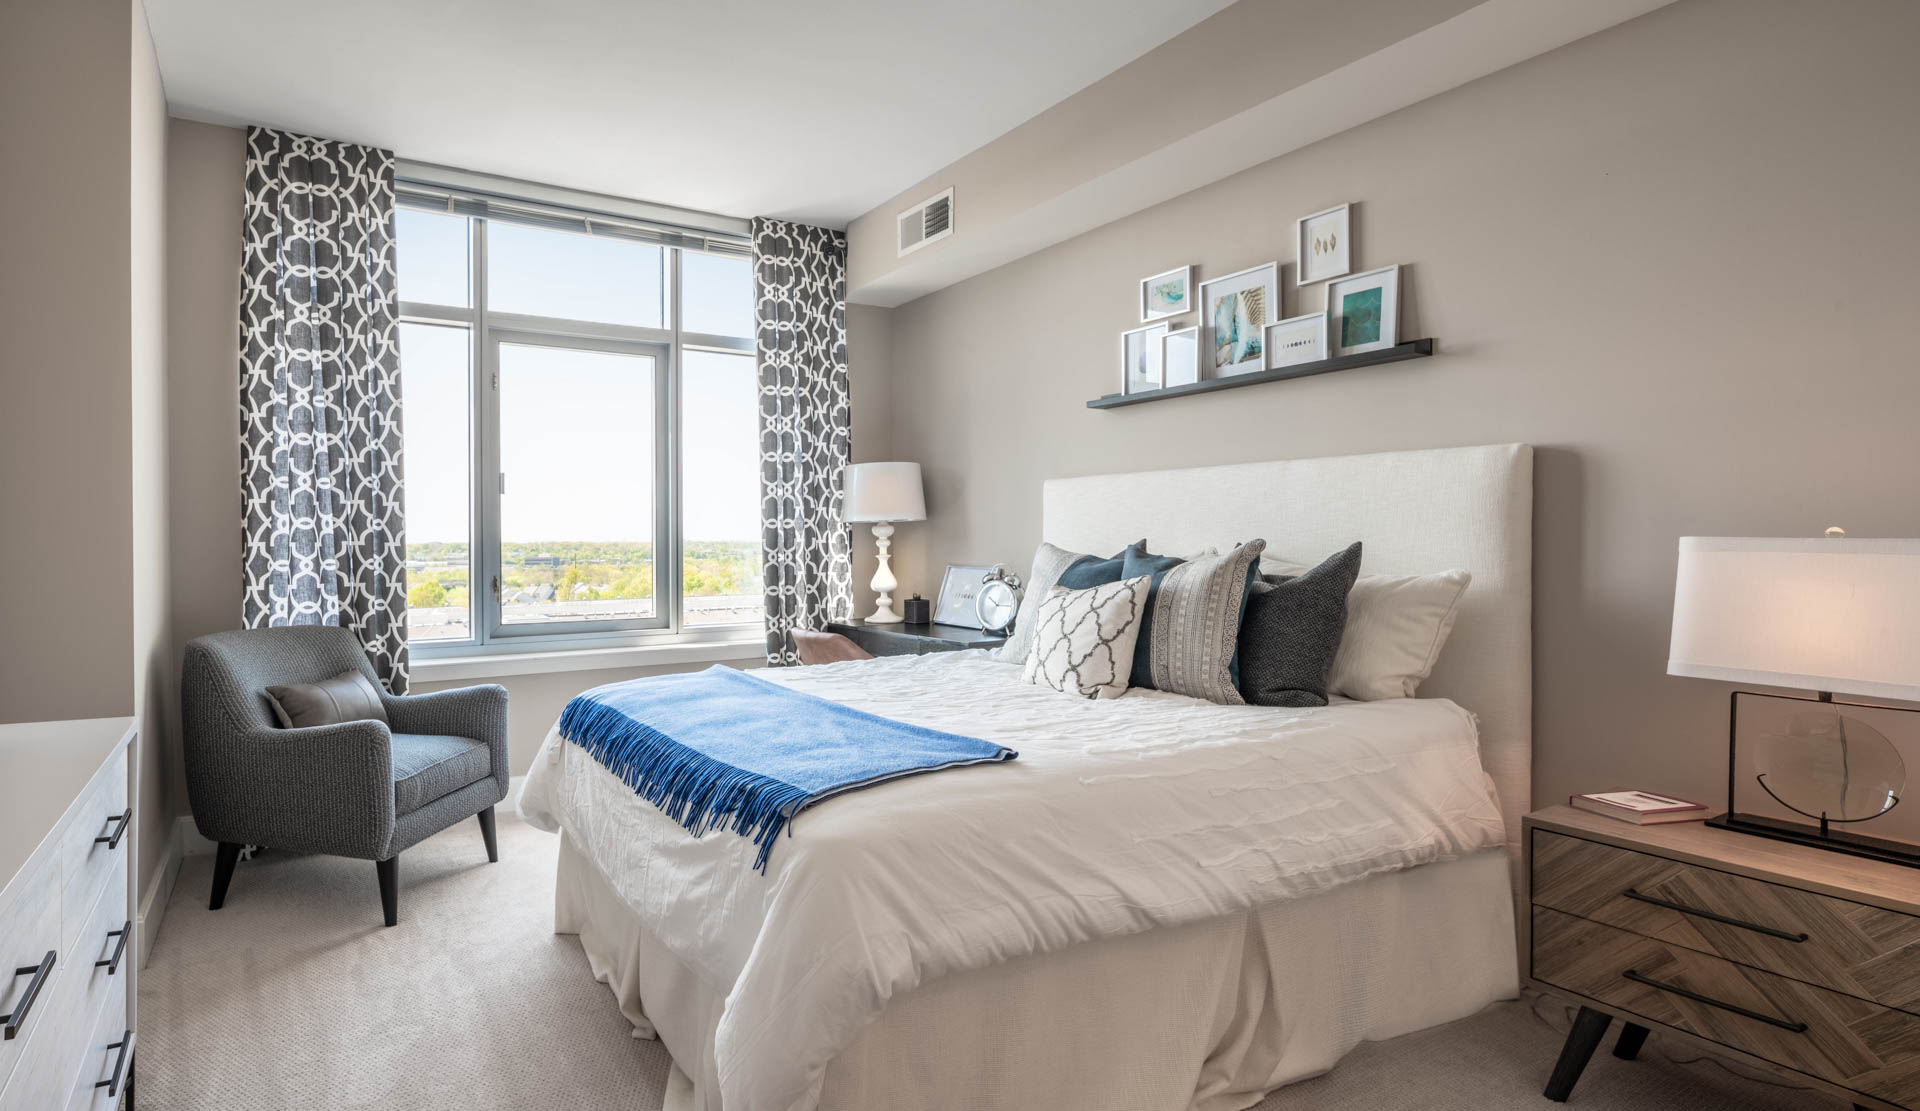 Spacious bedroom with queen bed, tasteful end tables and large window letting in sunlight